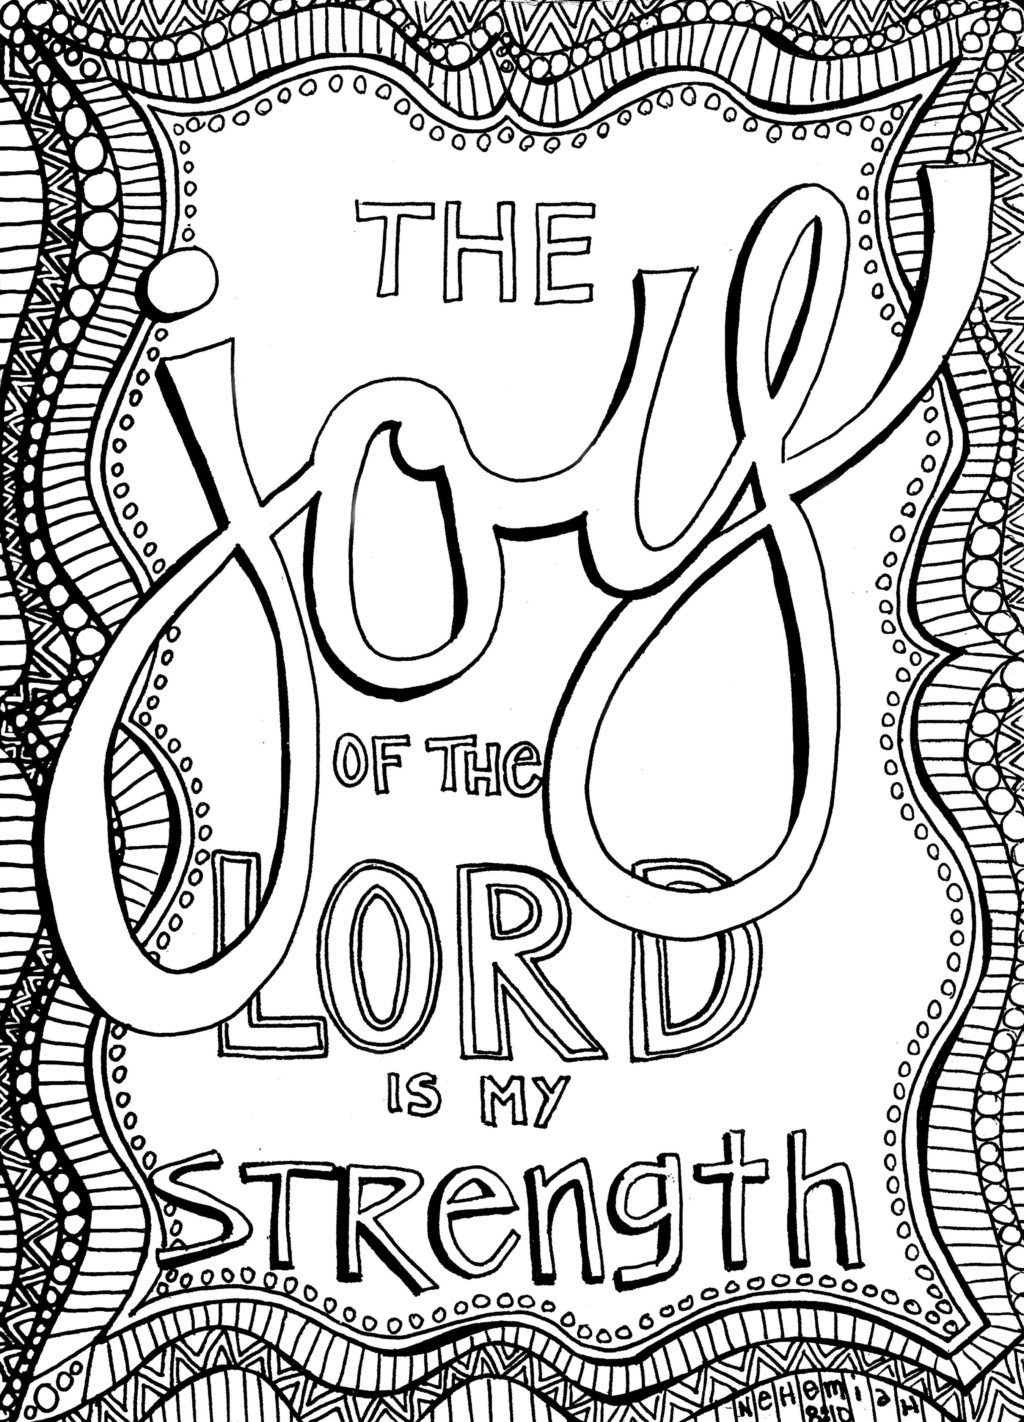 Coloring Book World ~ Coloring Book World Bible Verses Free - Free Printable Bible Coloring Pages With Scriptures